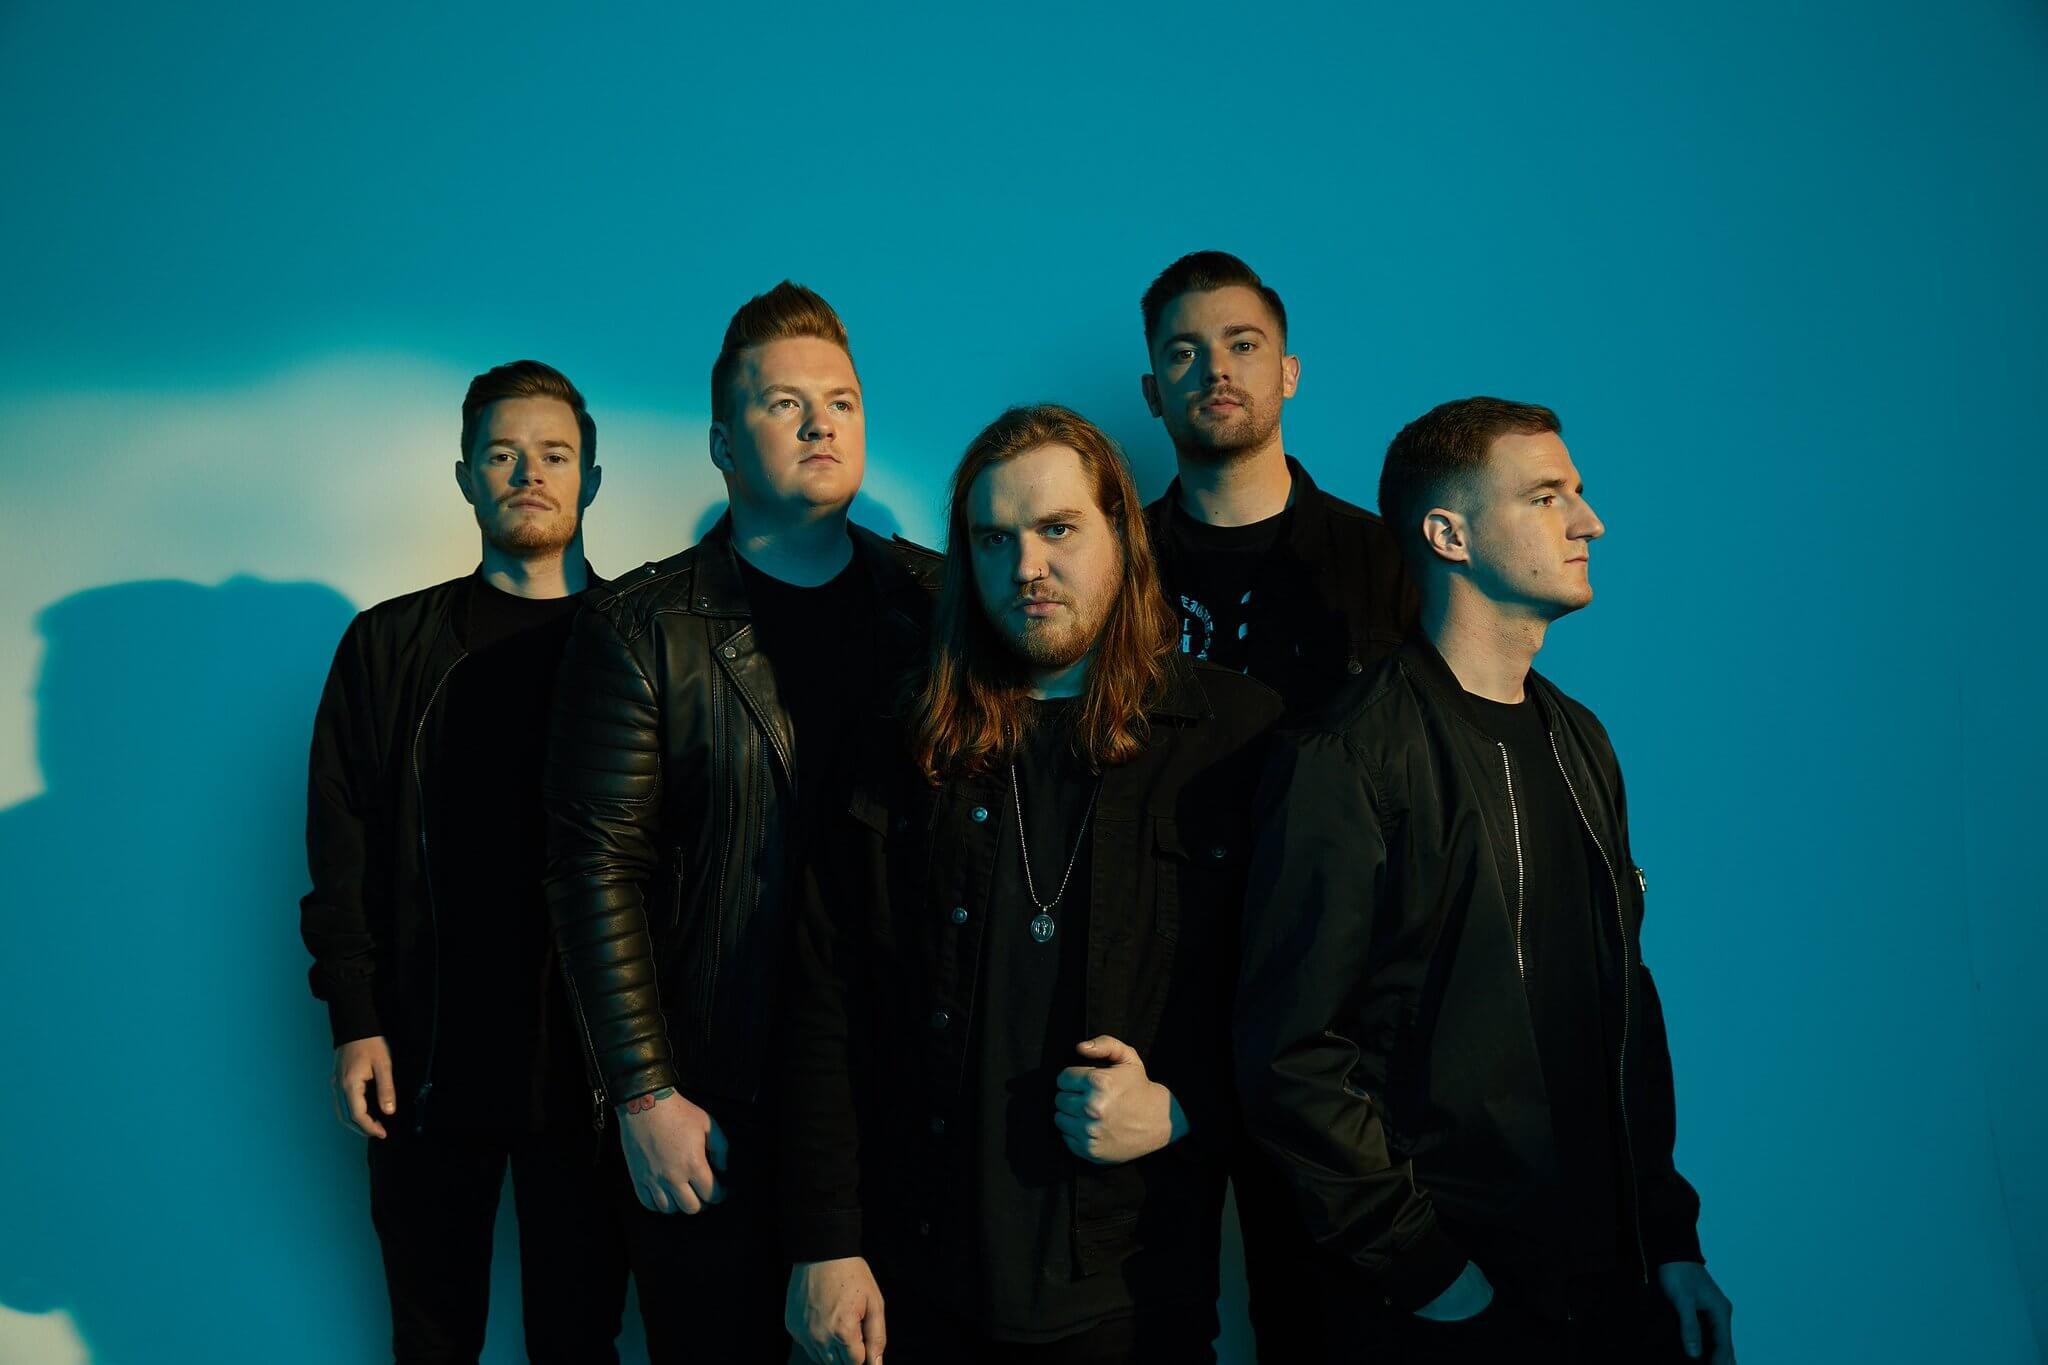 """WAGE WAR RELEASE 'BLUEPRINTS' B-SIDE TRACK """"SURROUNDED"""""""